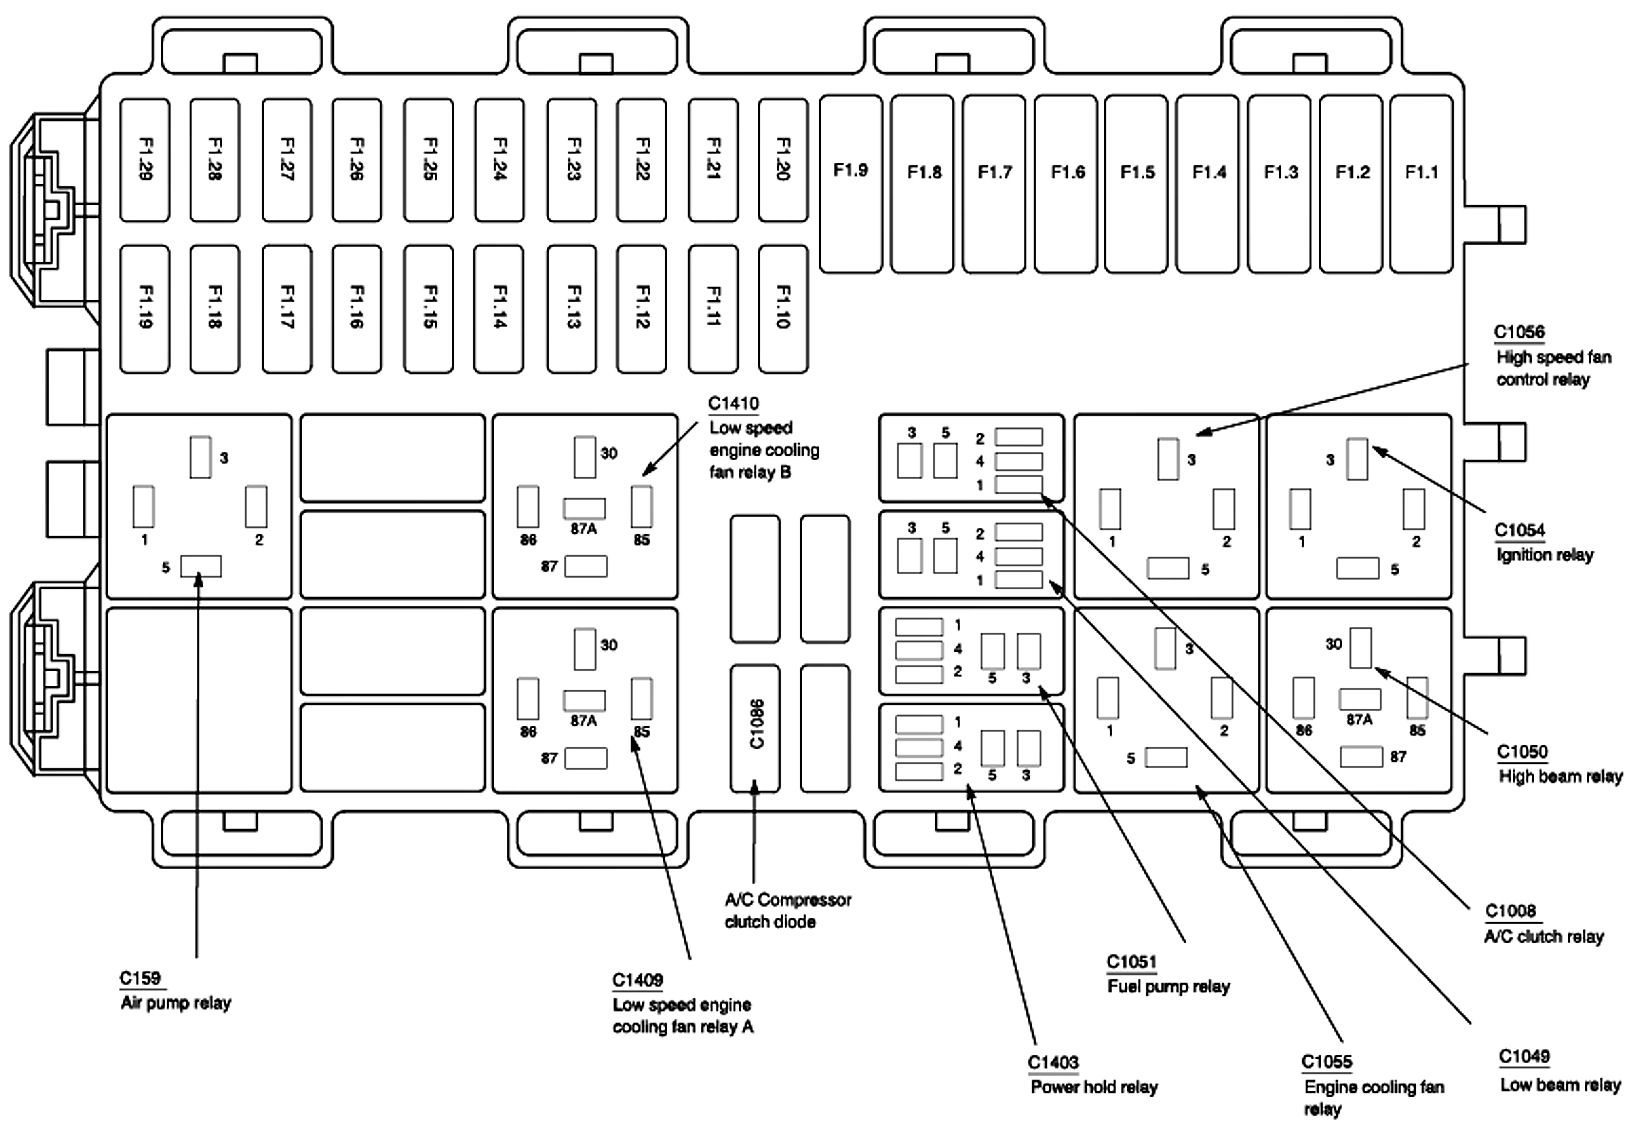 2009 Ford Focus Fuse Box Diagram 32 Wiring Images 2008 Fusion Relay And Djtuabx Removal Simonand